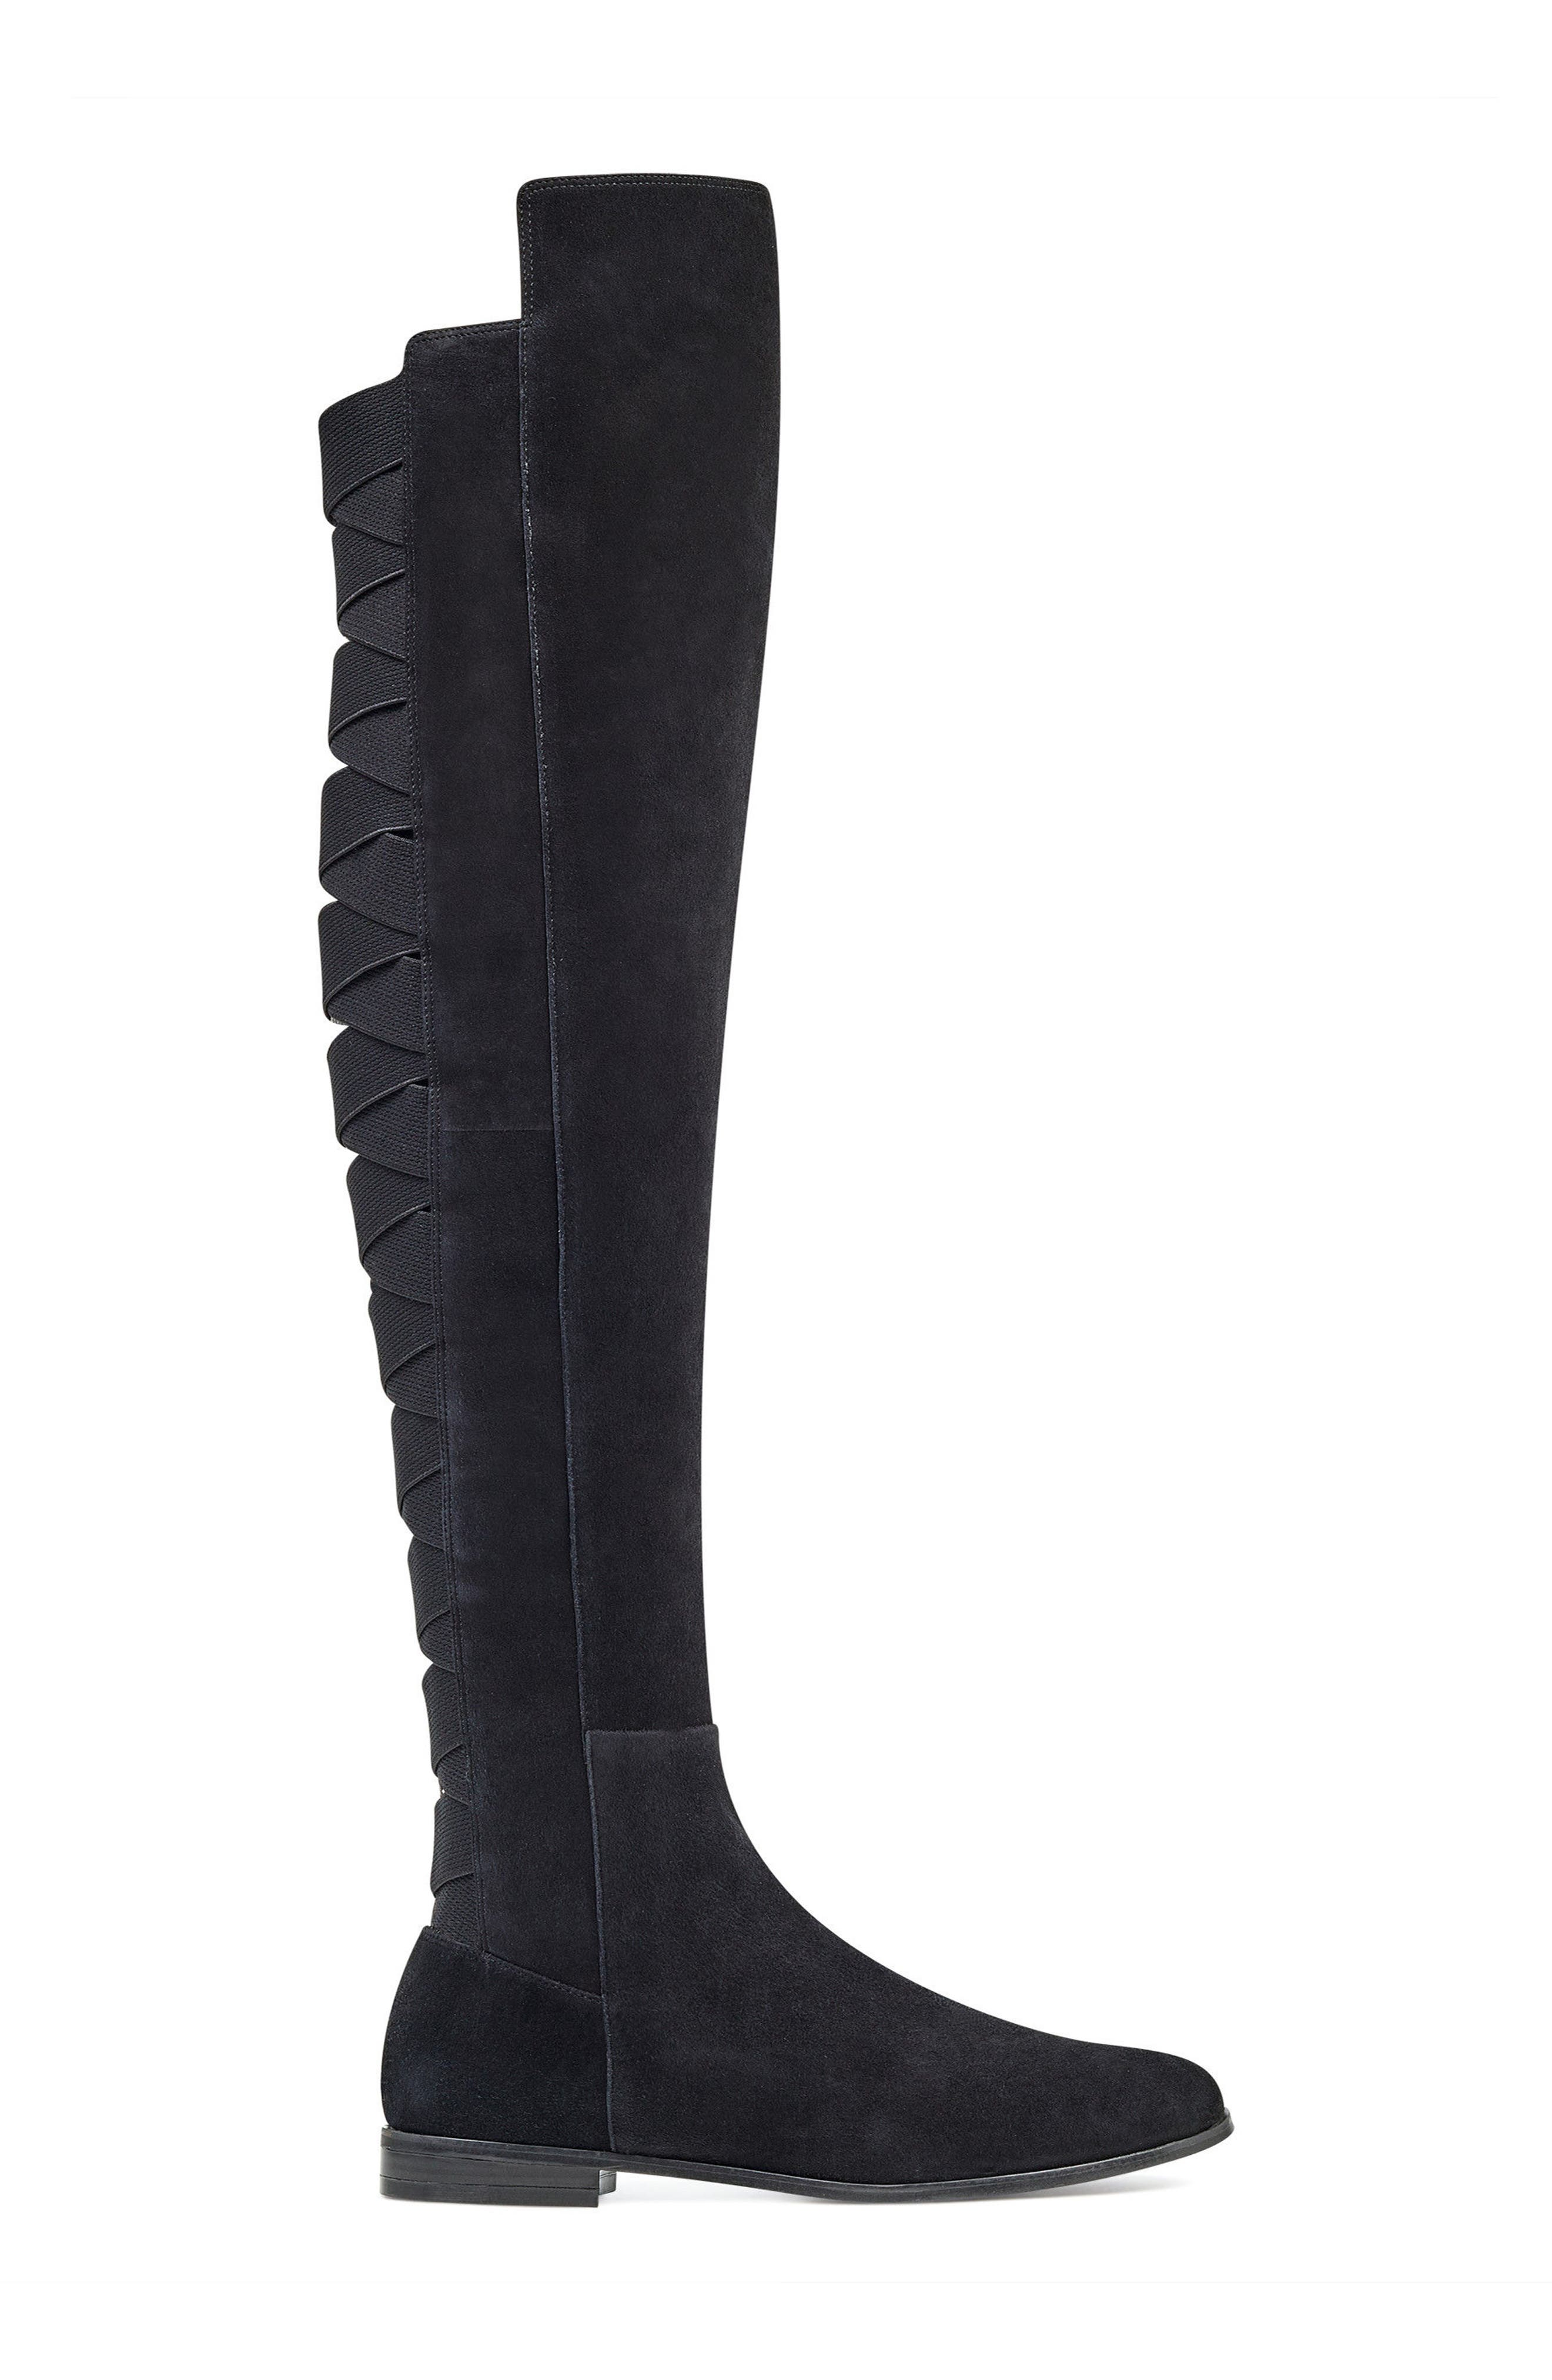 NINE WEST,                             Eltynn Over the Knee Boot,                             Alternate thumbnail 3, color,                             001